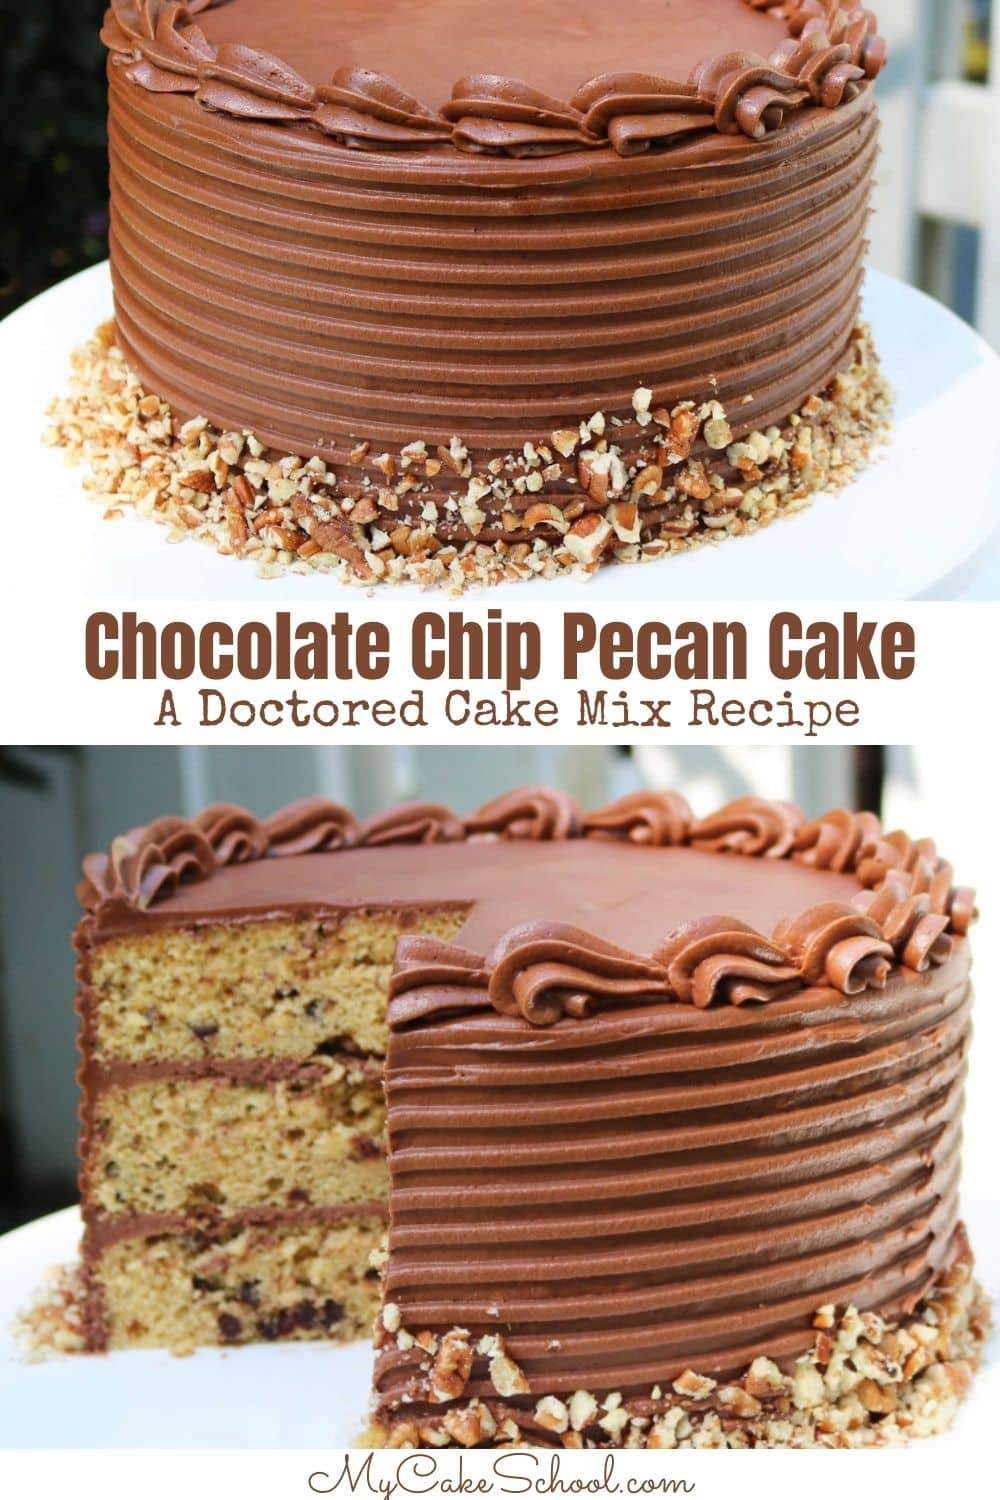 Chocolate Chip Pecan Cake- So moist and flavorful!